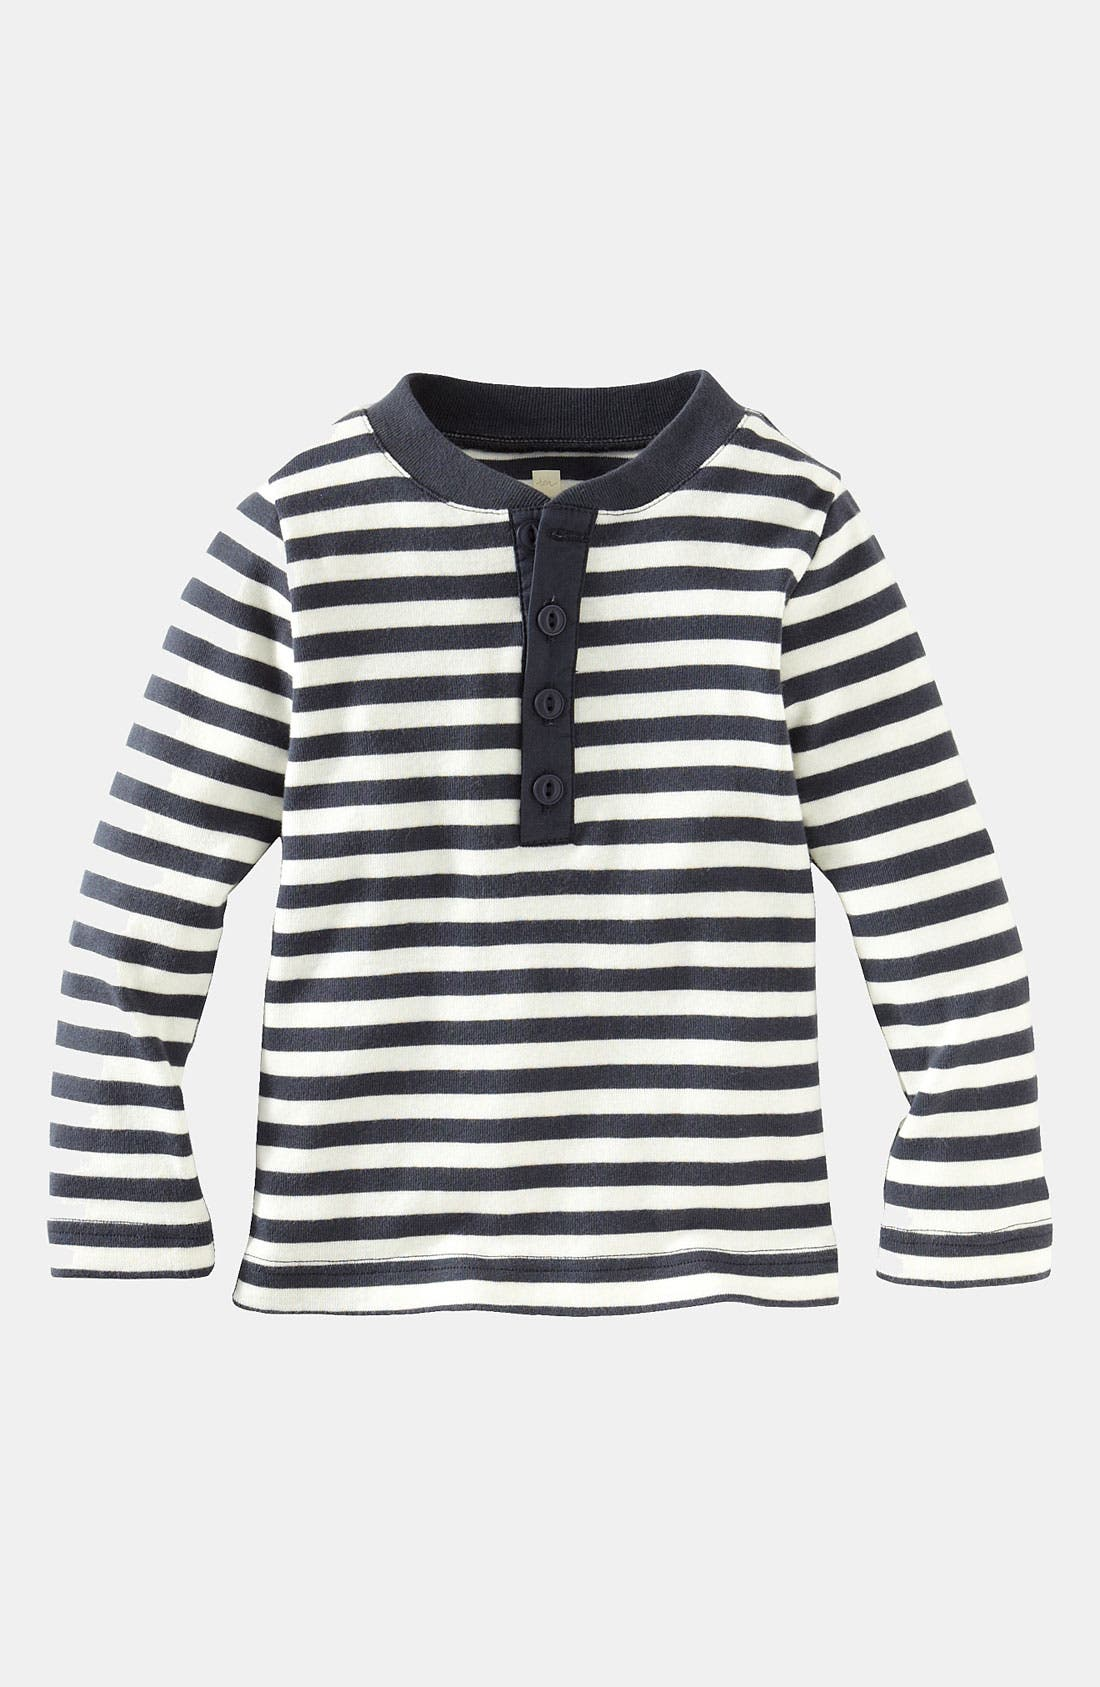 Alternate Image 1 Selected - Tea Collection Henley Shirt (Toddler)